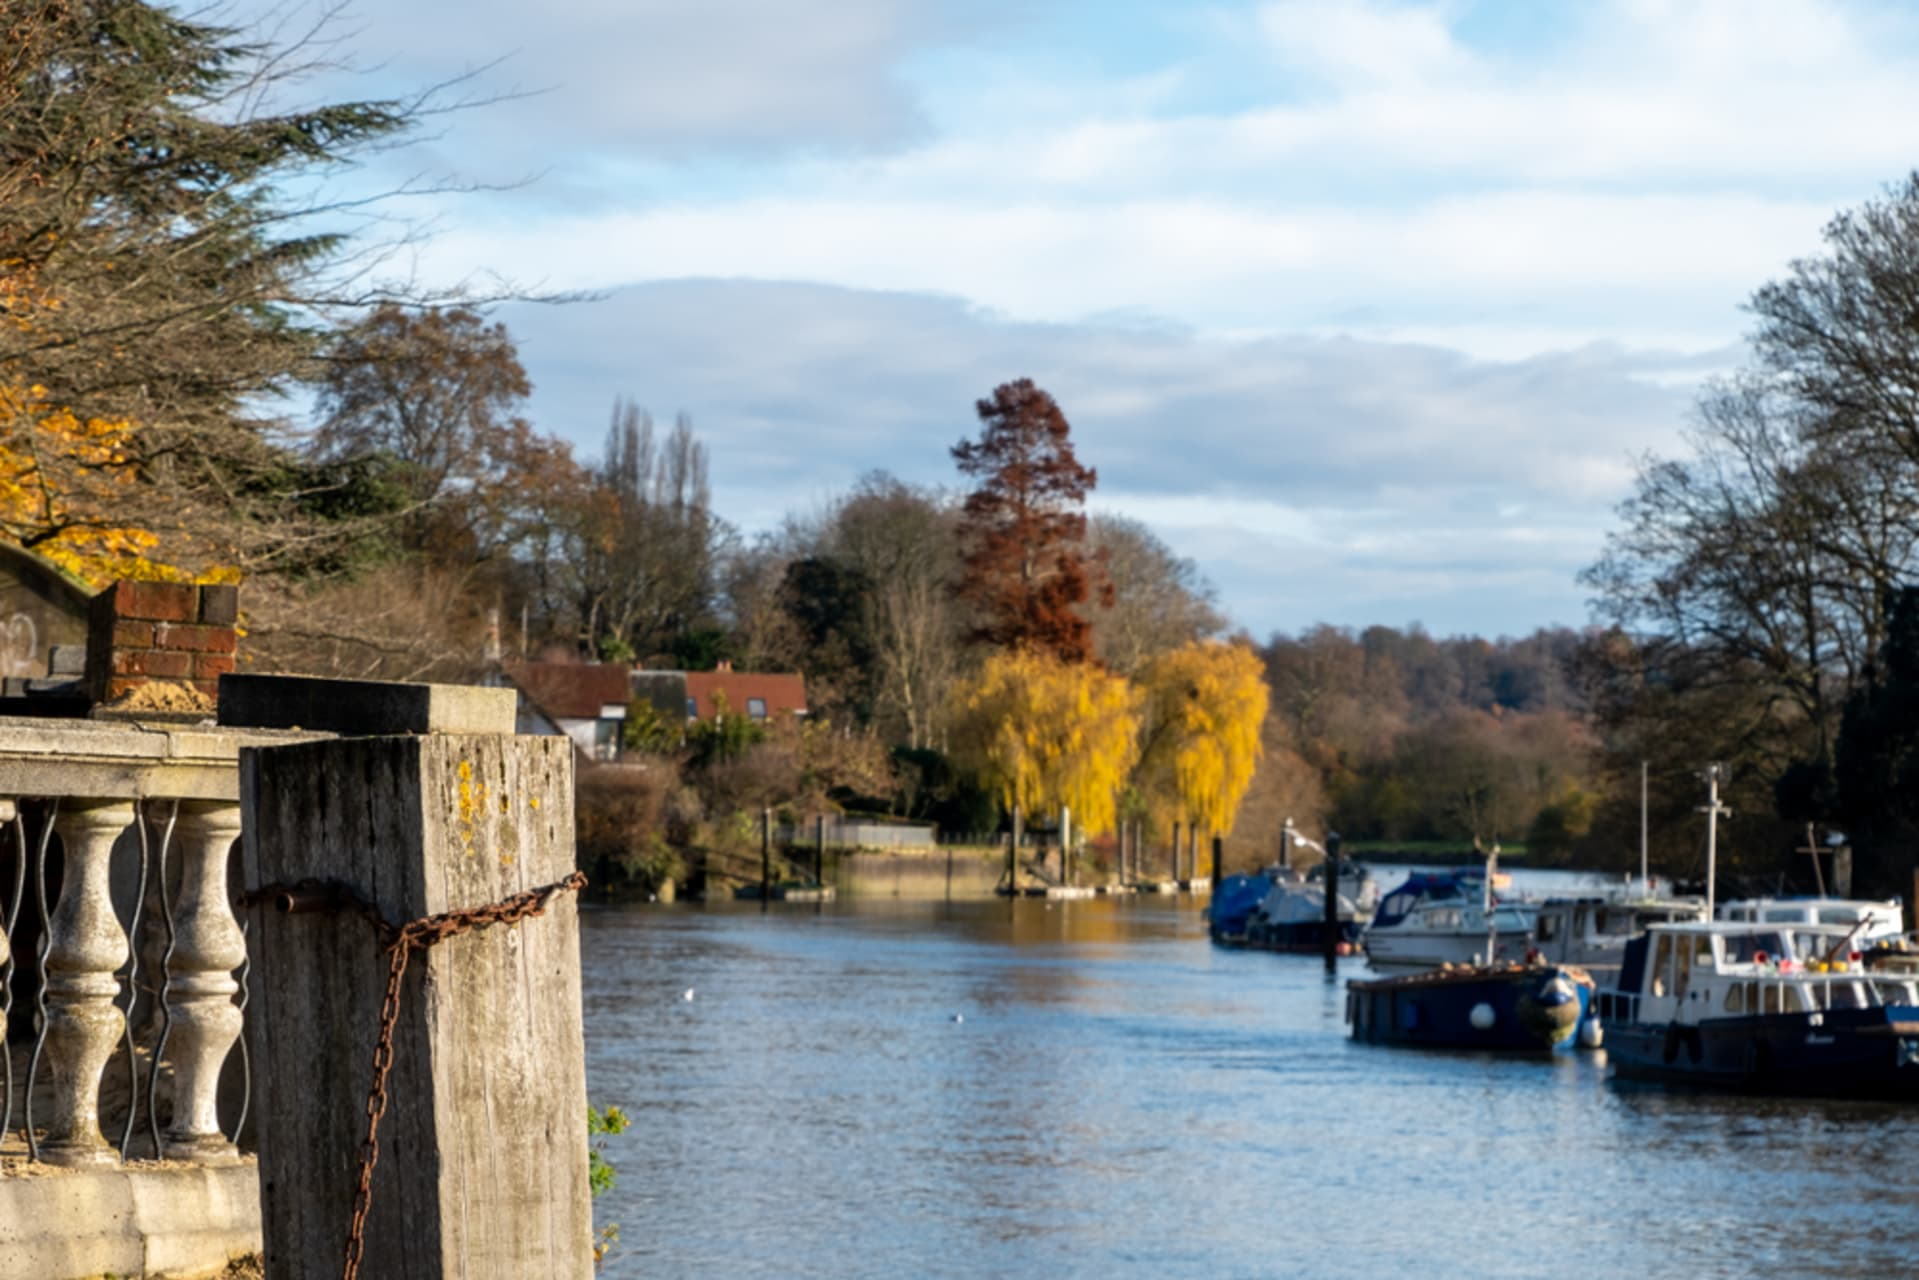 London - Take a Boat to Eel Pie Island - Home of the British Blues